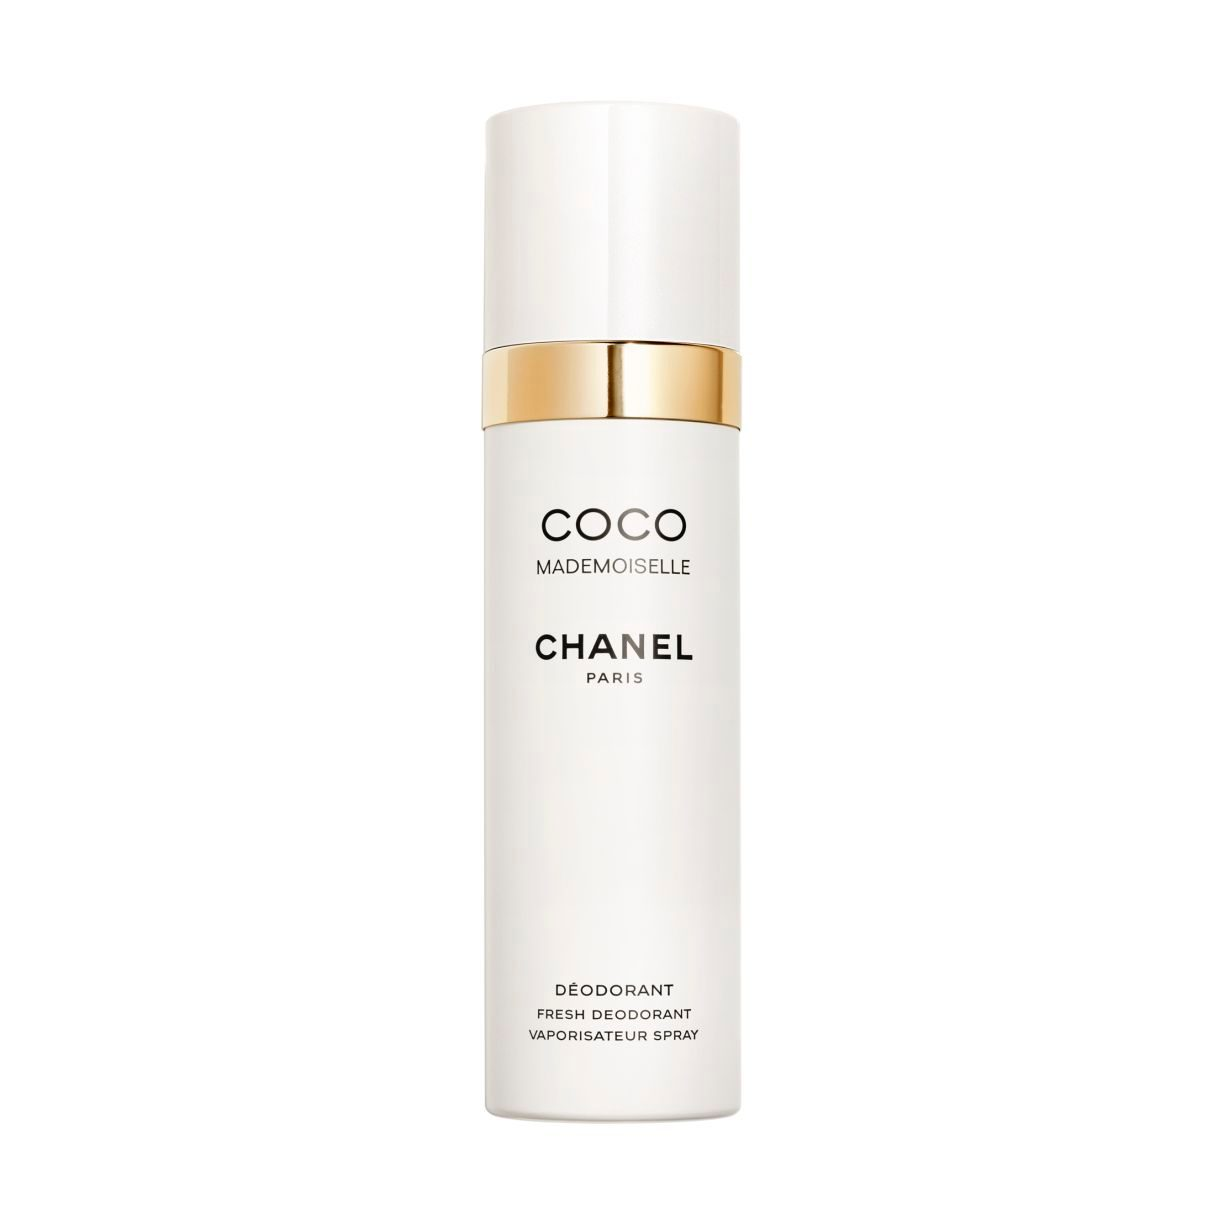 COCO MADEMOISELLE DEODORANT SPRAY 100ml